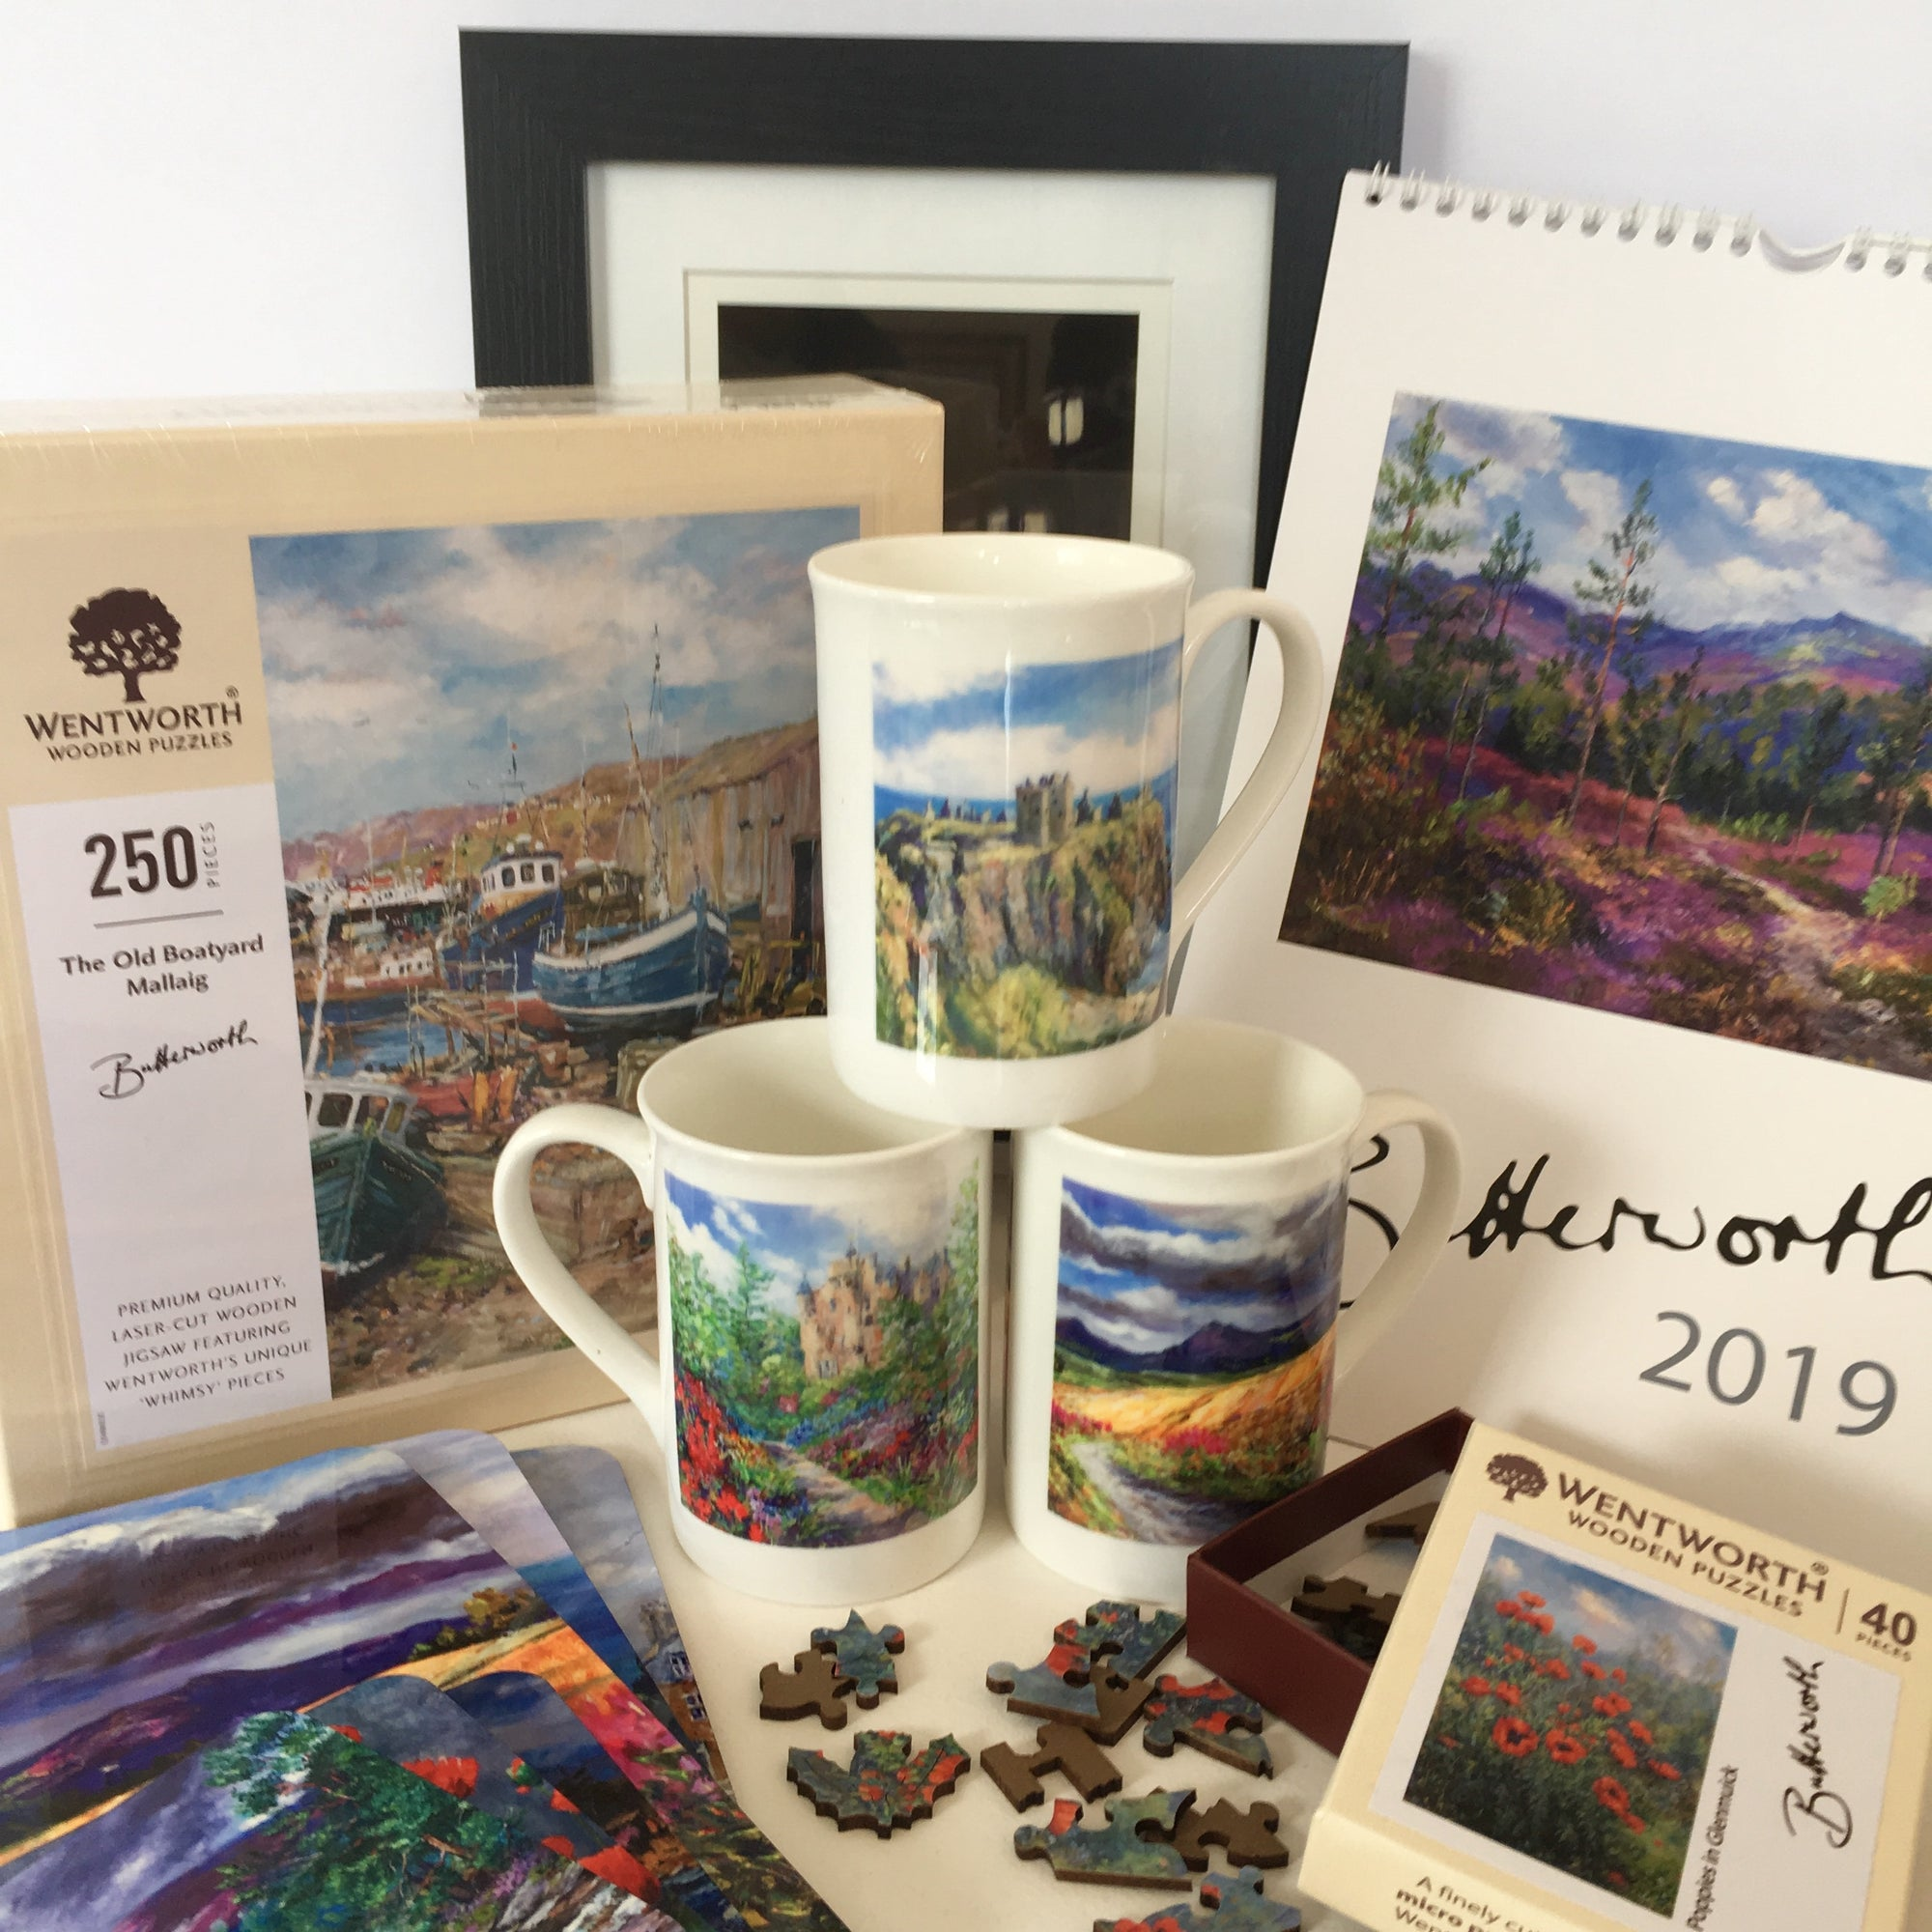 Fine Art Scottish Giftware and gift ideas from Scottish artists Mary Louise Butterworth and Howard Butterworth. Scottish Art Gallery in Royal Deeside Scotland.